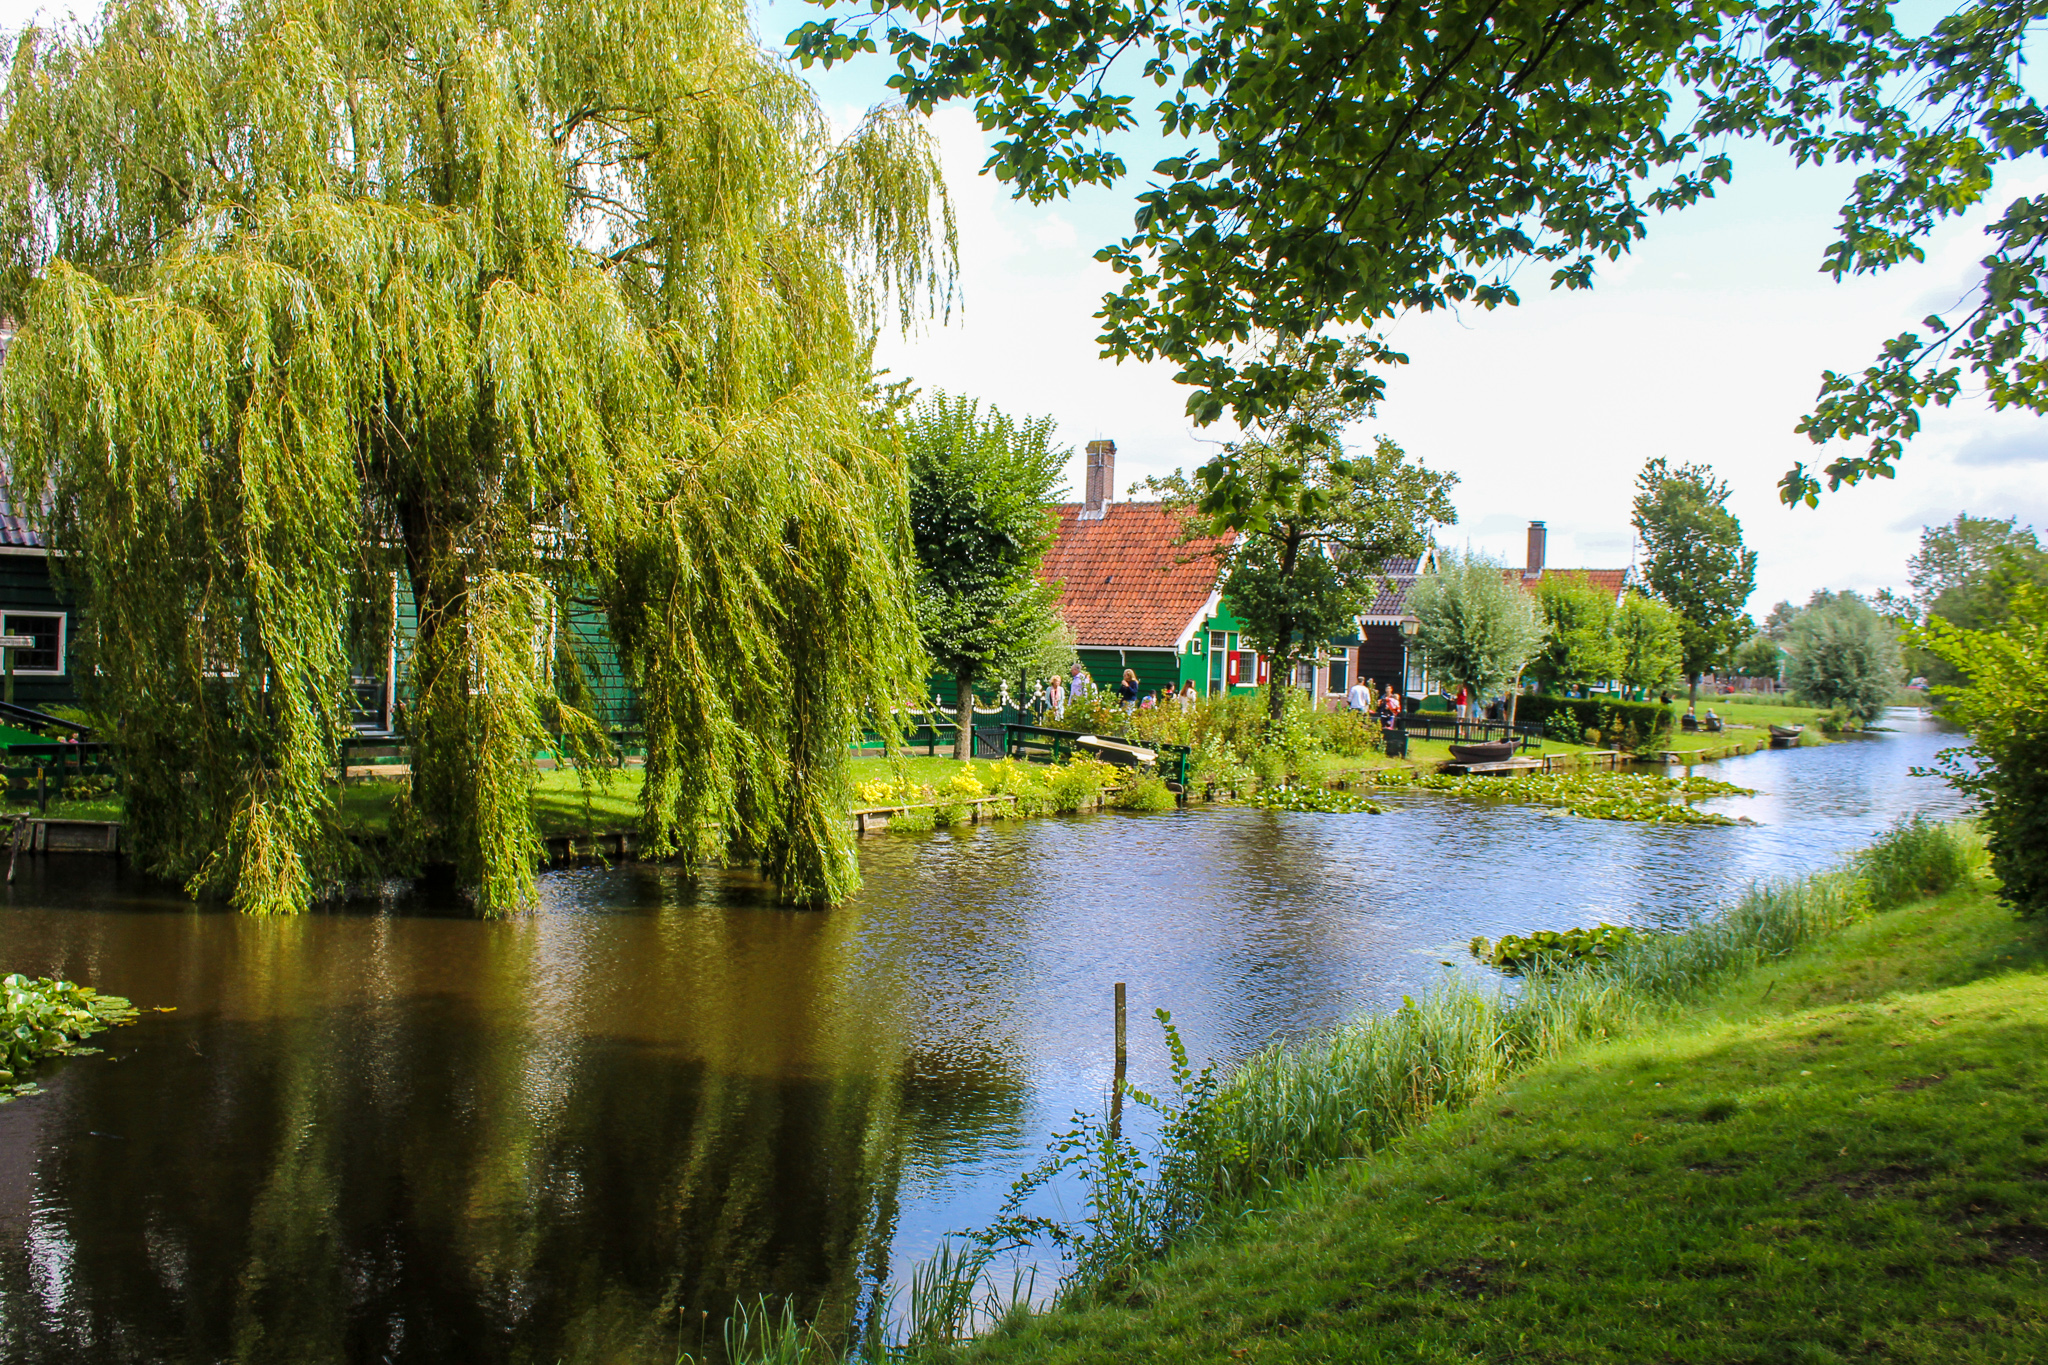 zaanse schans attractions: don't miss simply strolling through the village